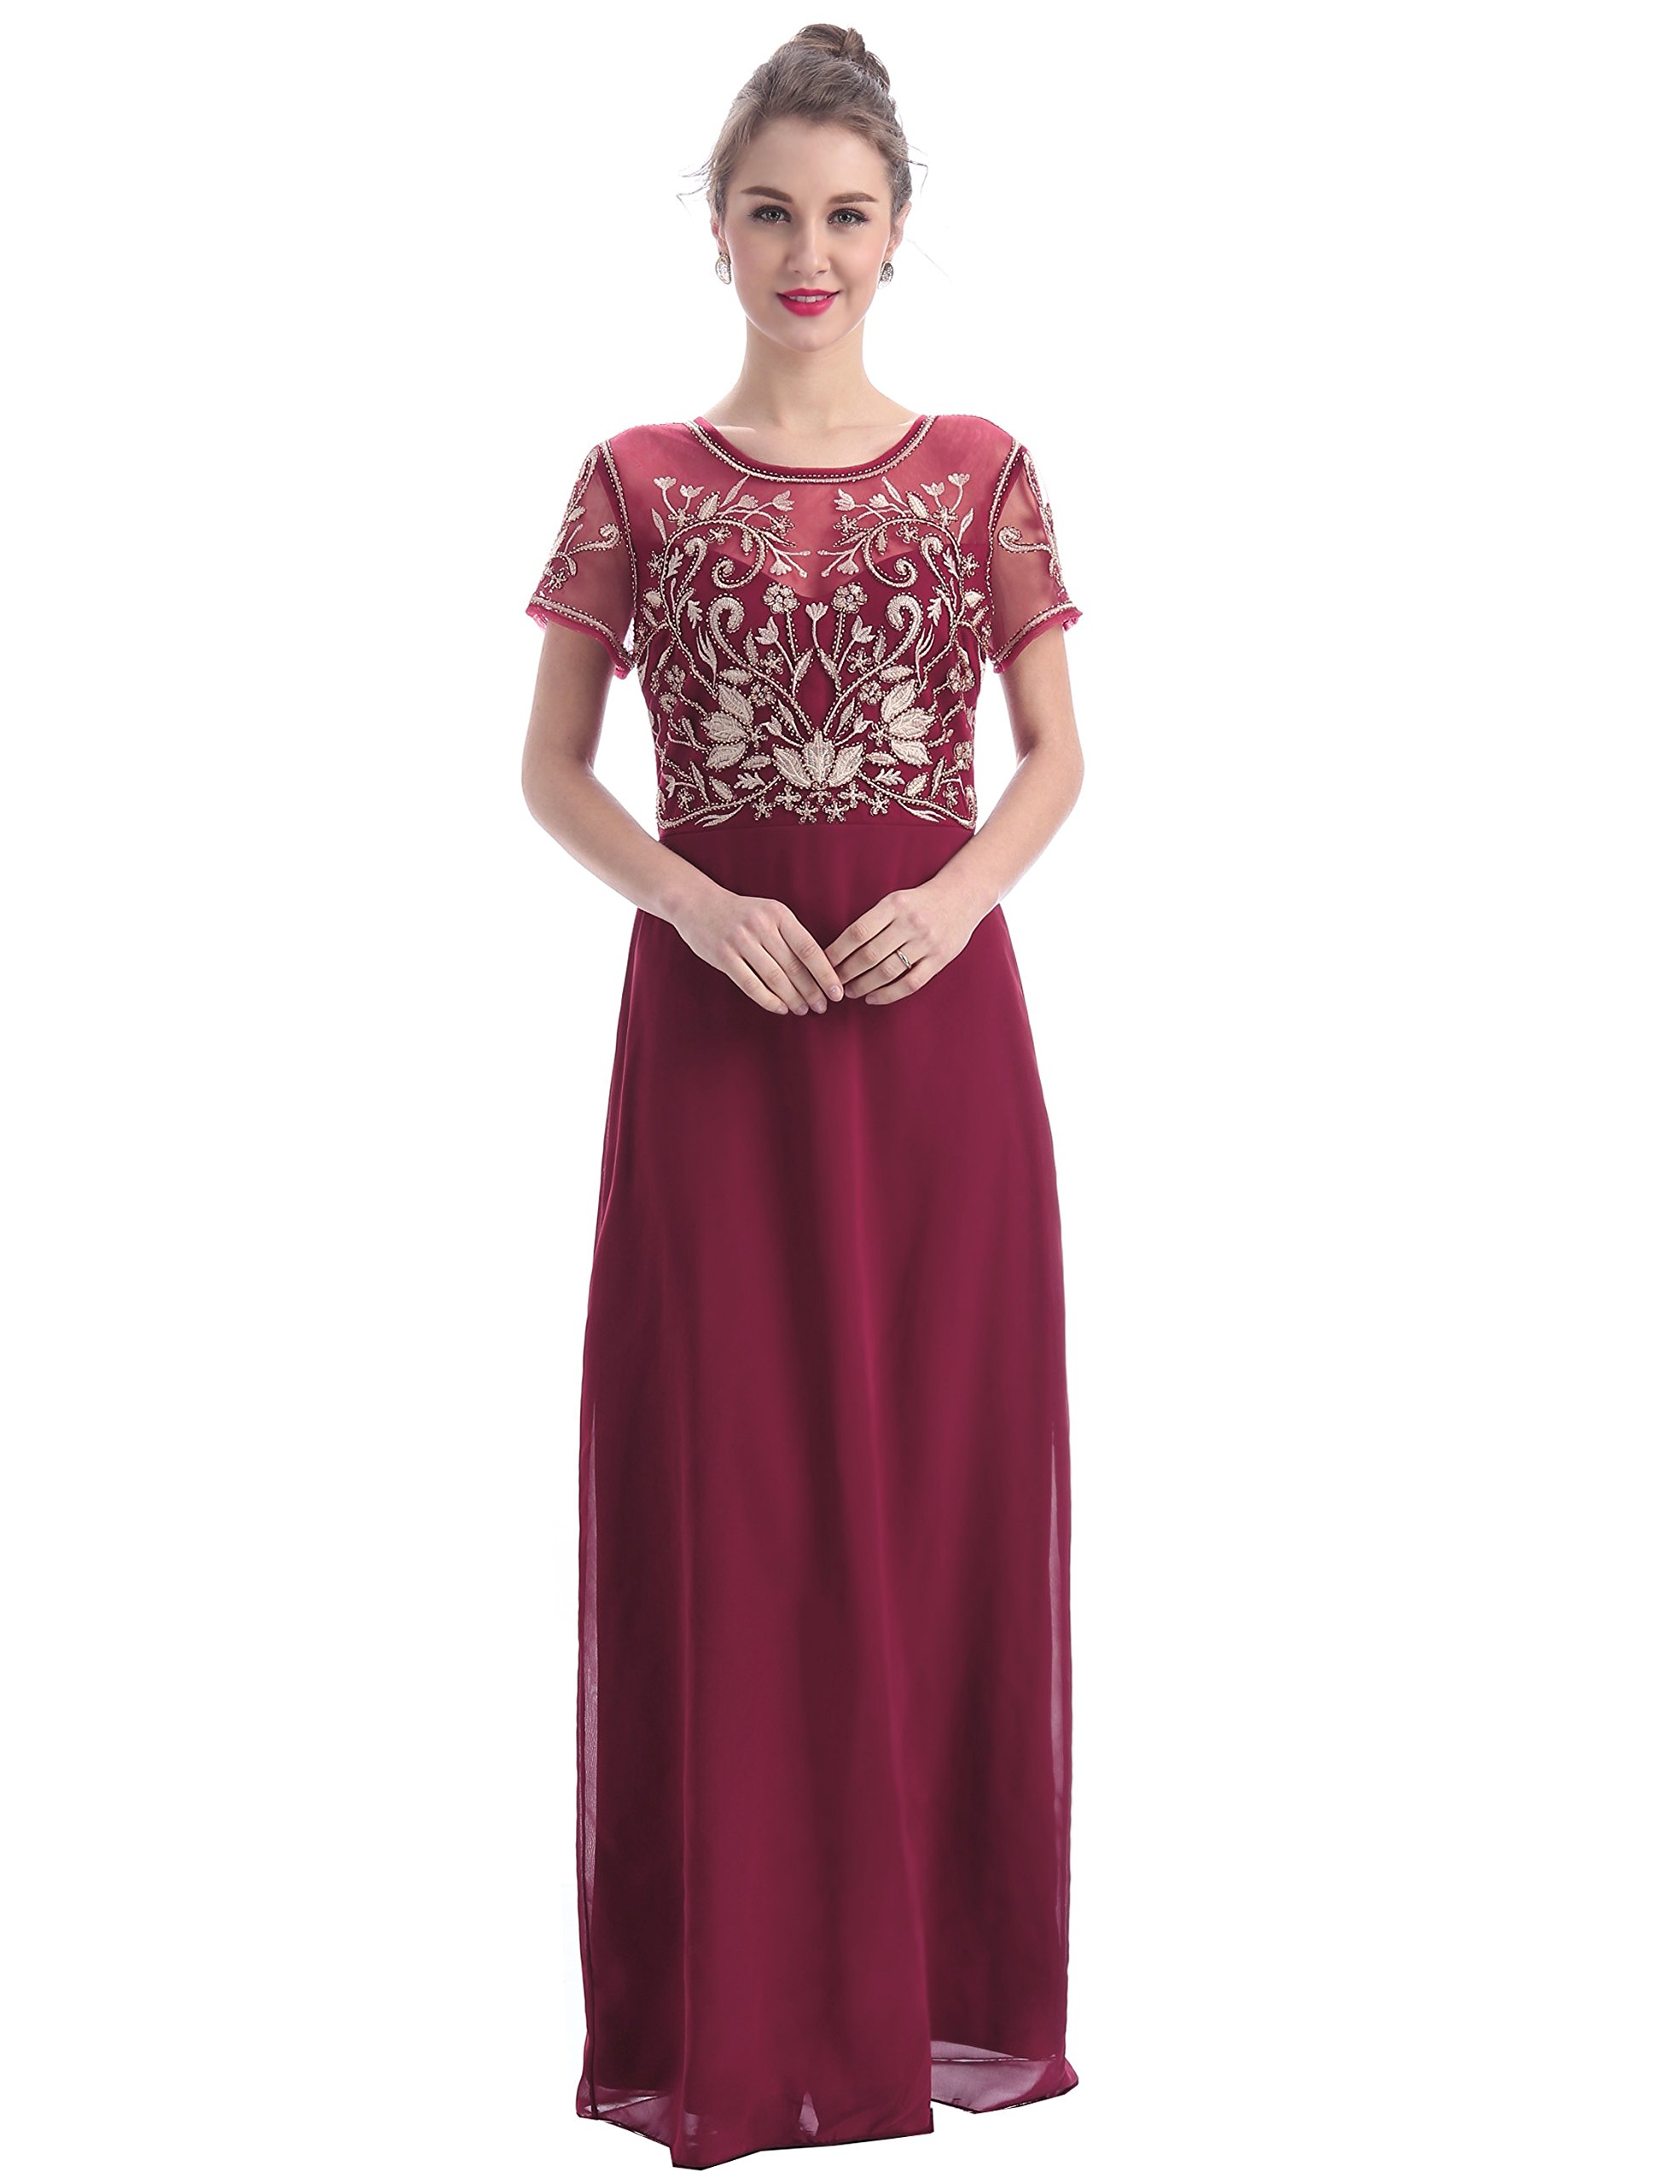 MANER Women's Fashion Chiffon Tulle Beaded Embroidered Long Evening Gowns Prom Party Dress (XL, Burgundy/Apricot)